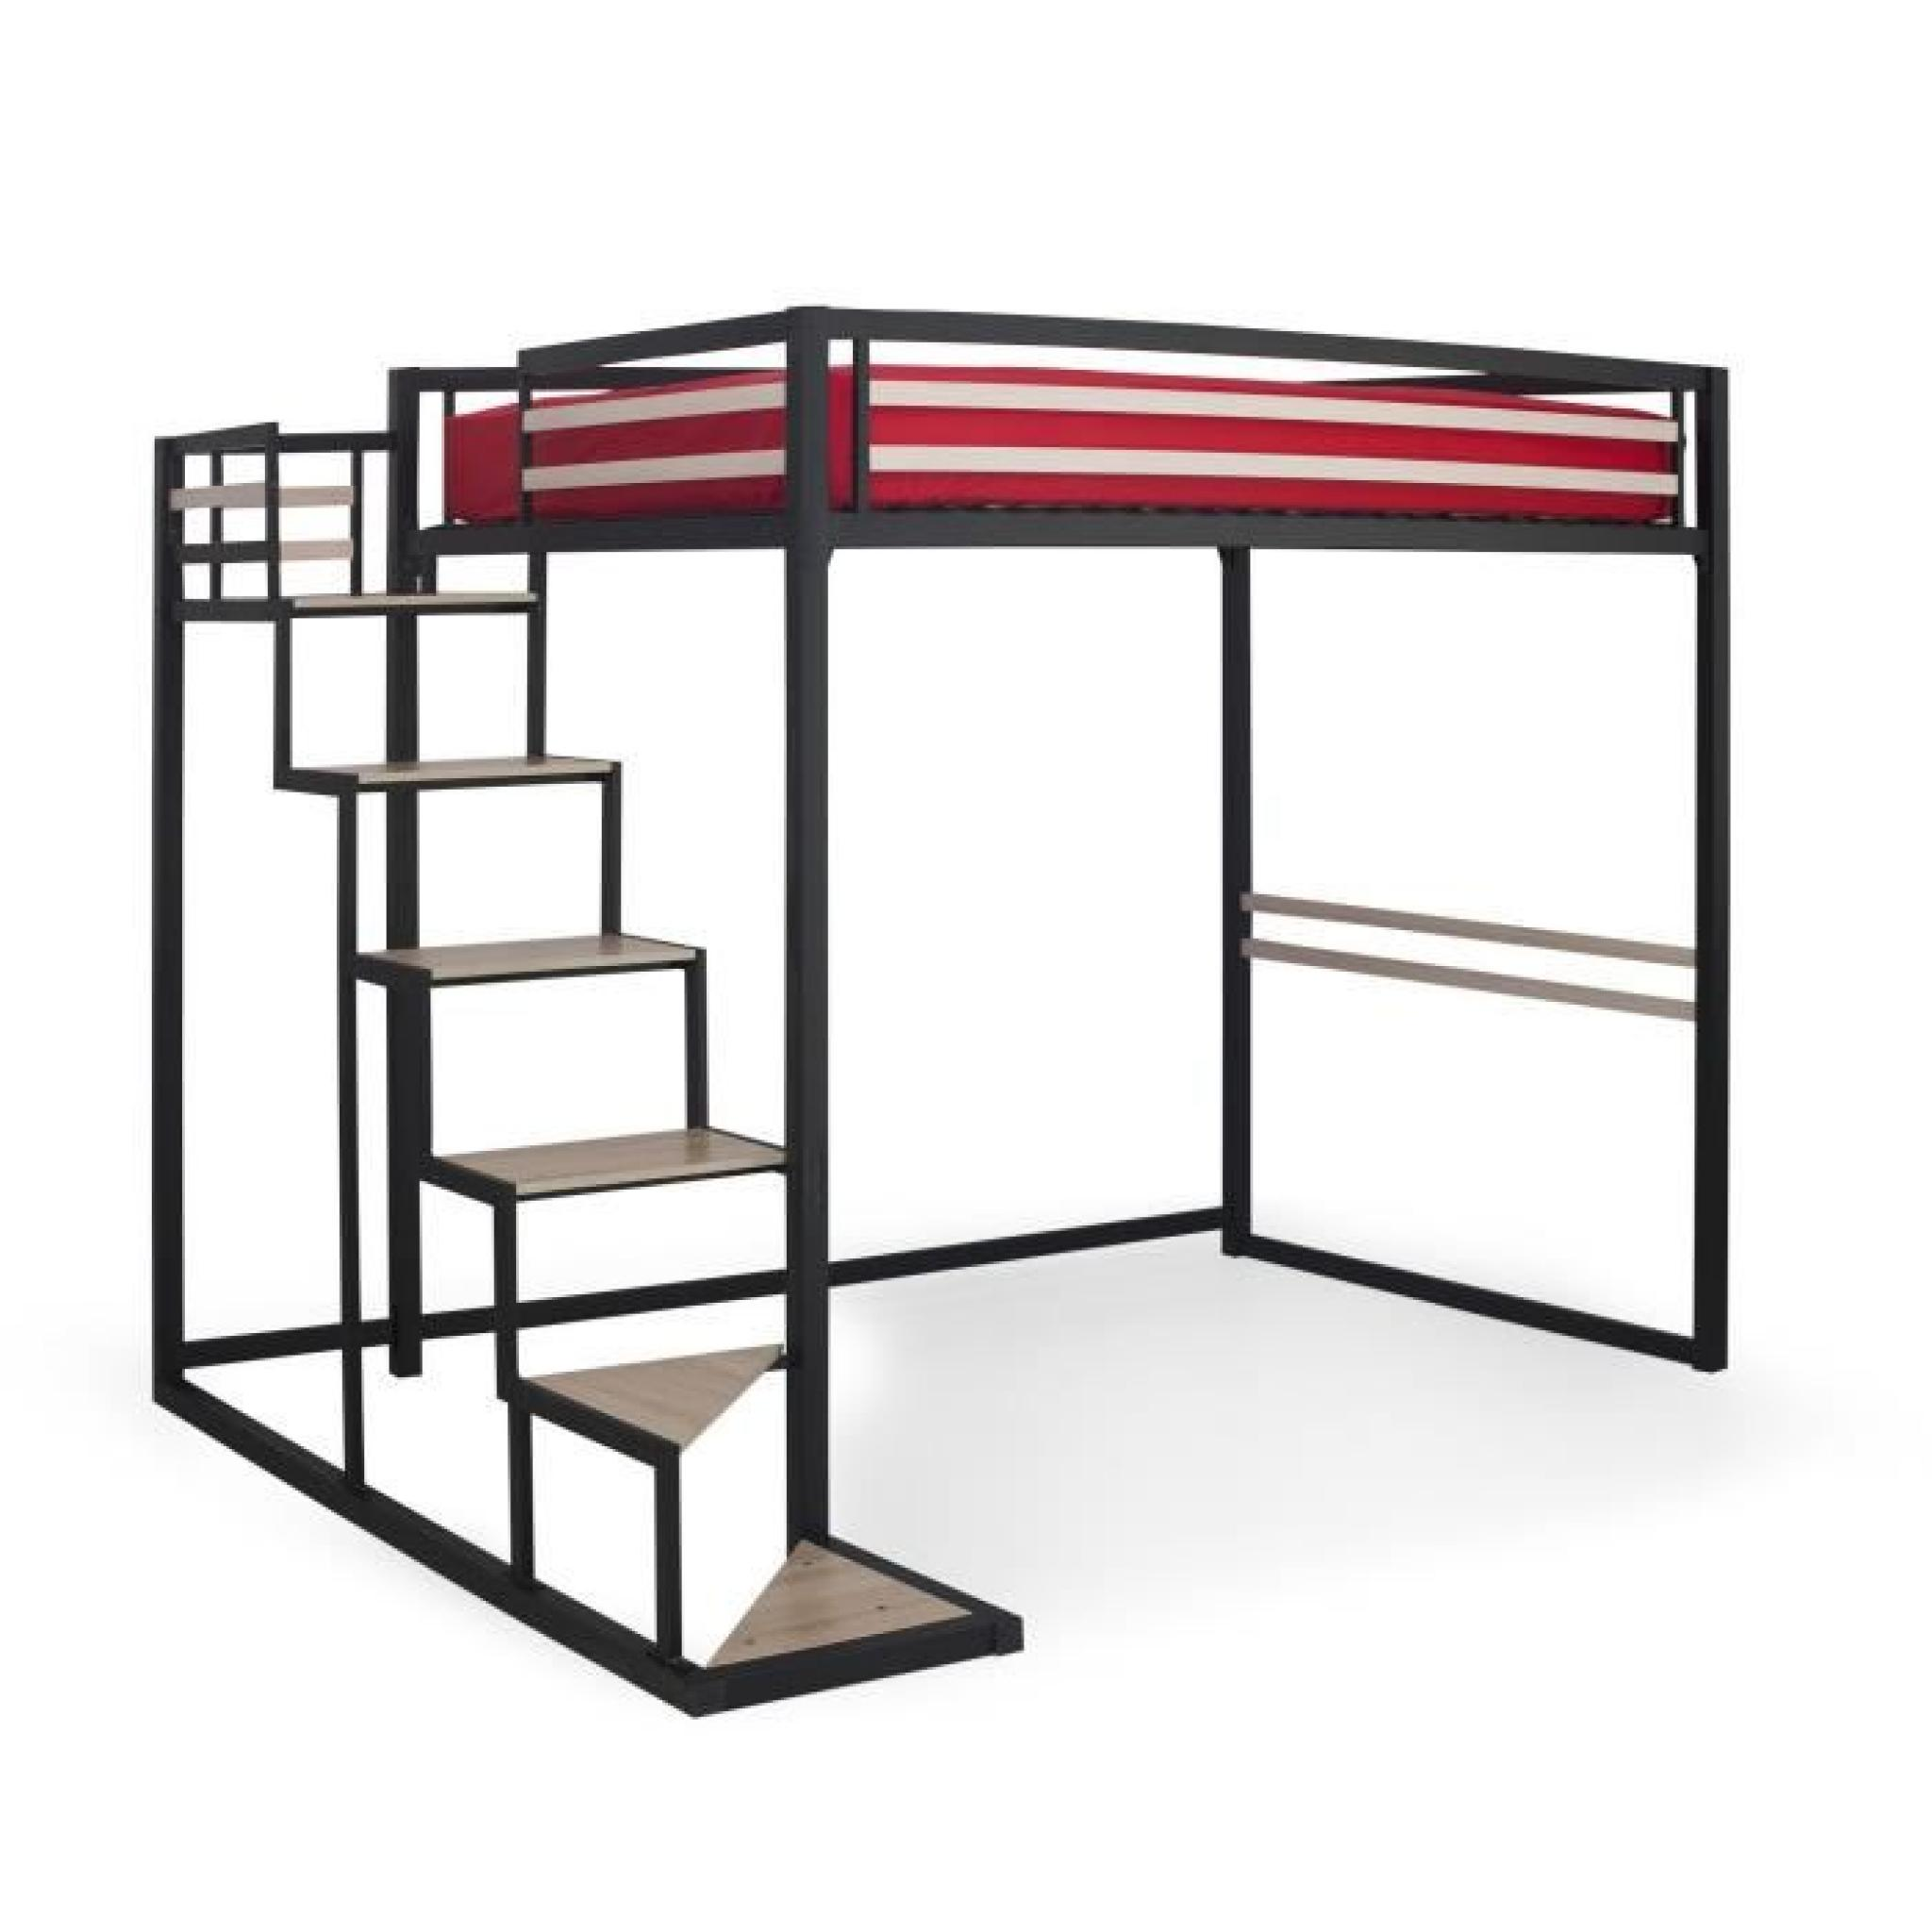 Home mezzanine 140x200 achat vente lit mezzanine pas for Bureau 3 places